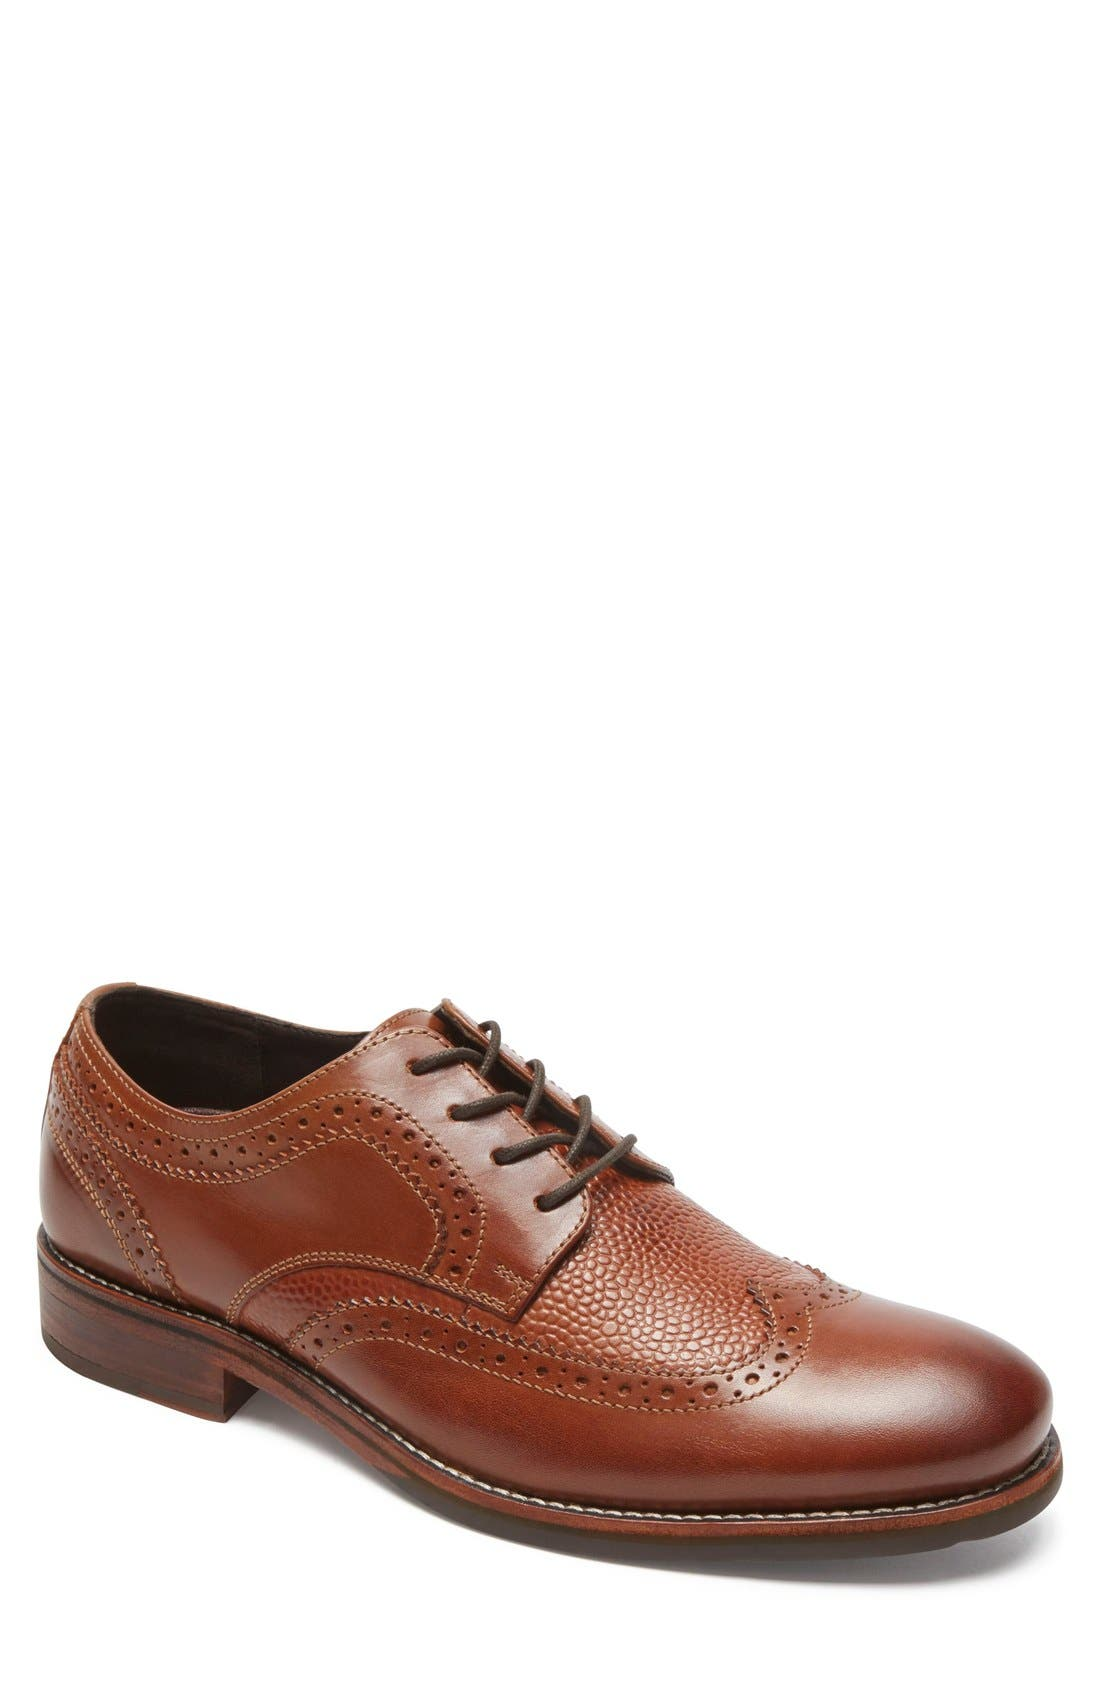 Main Image - Rockport Wyat Wingtip (Men)